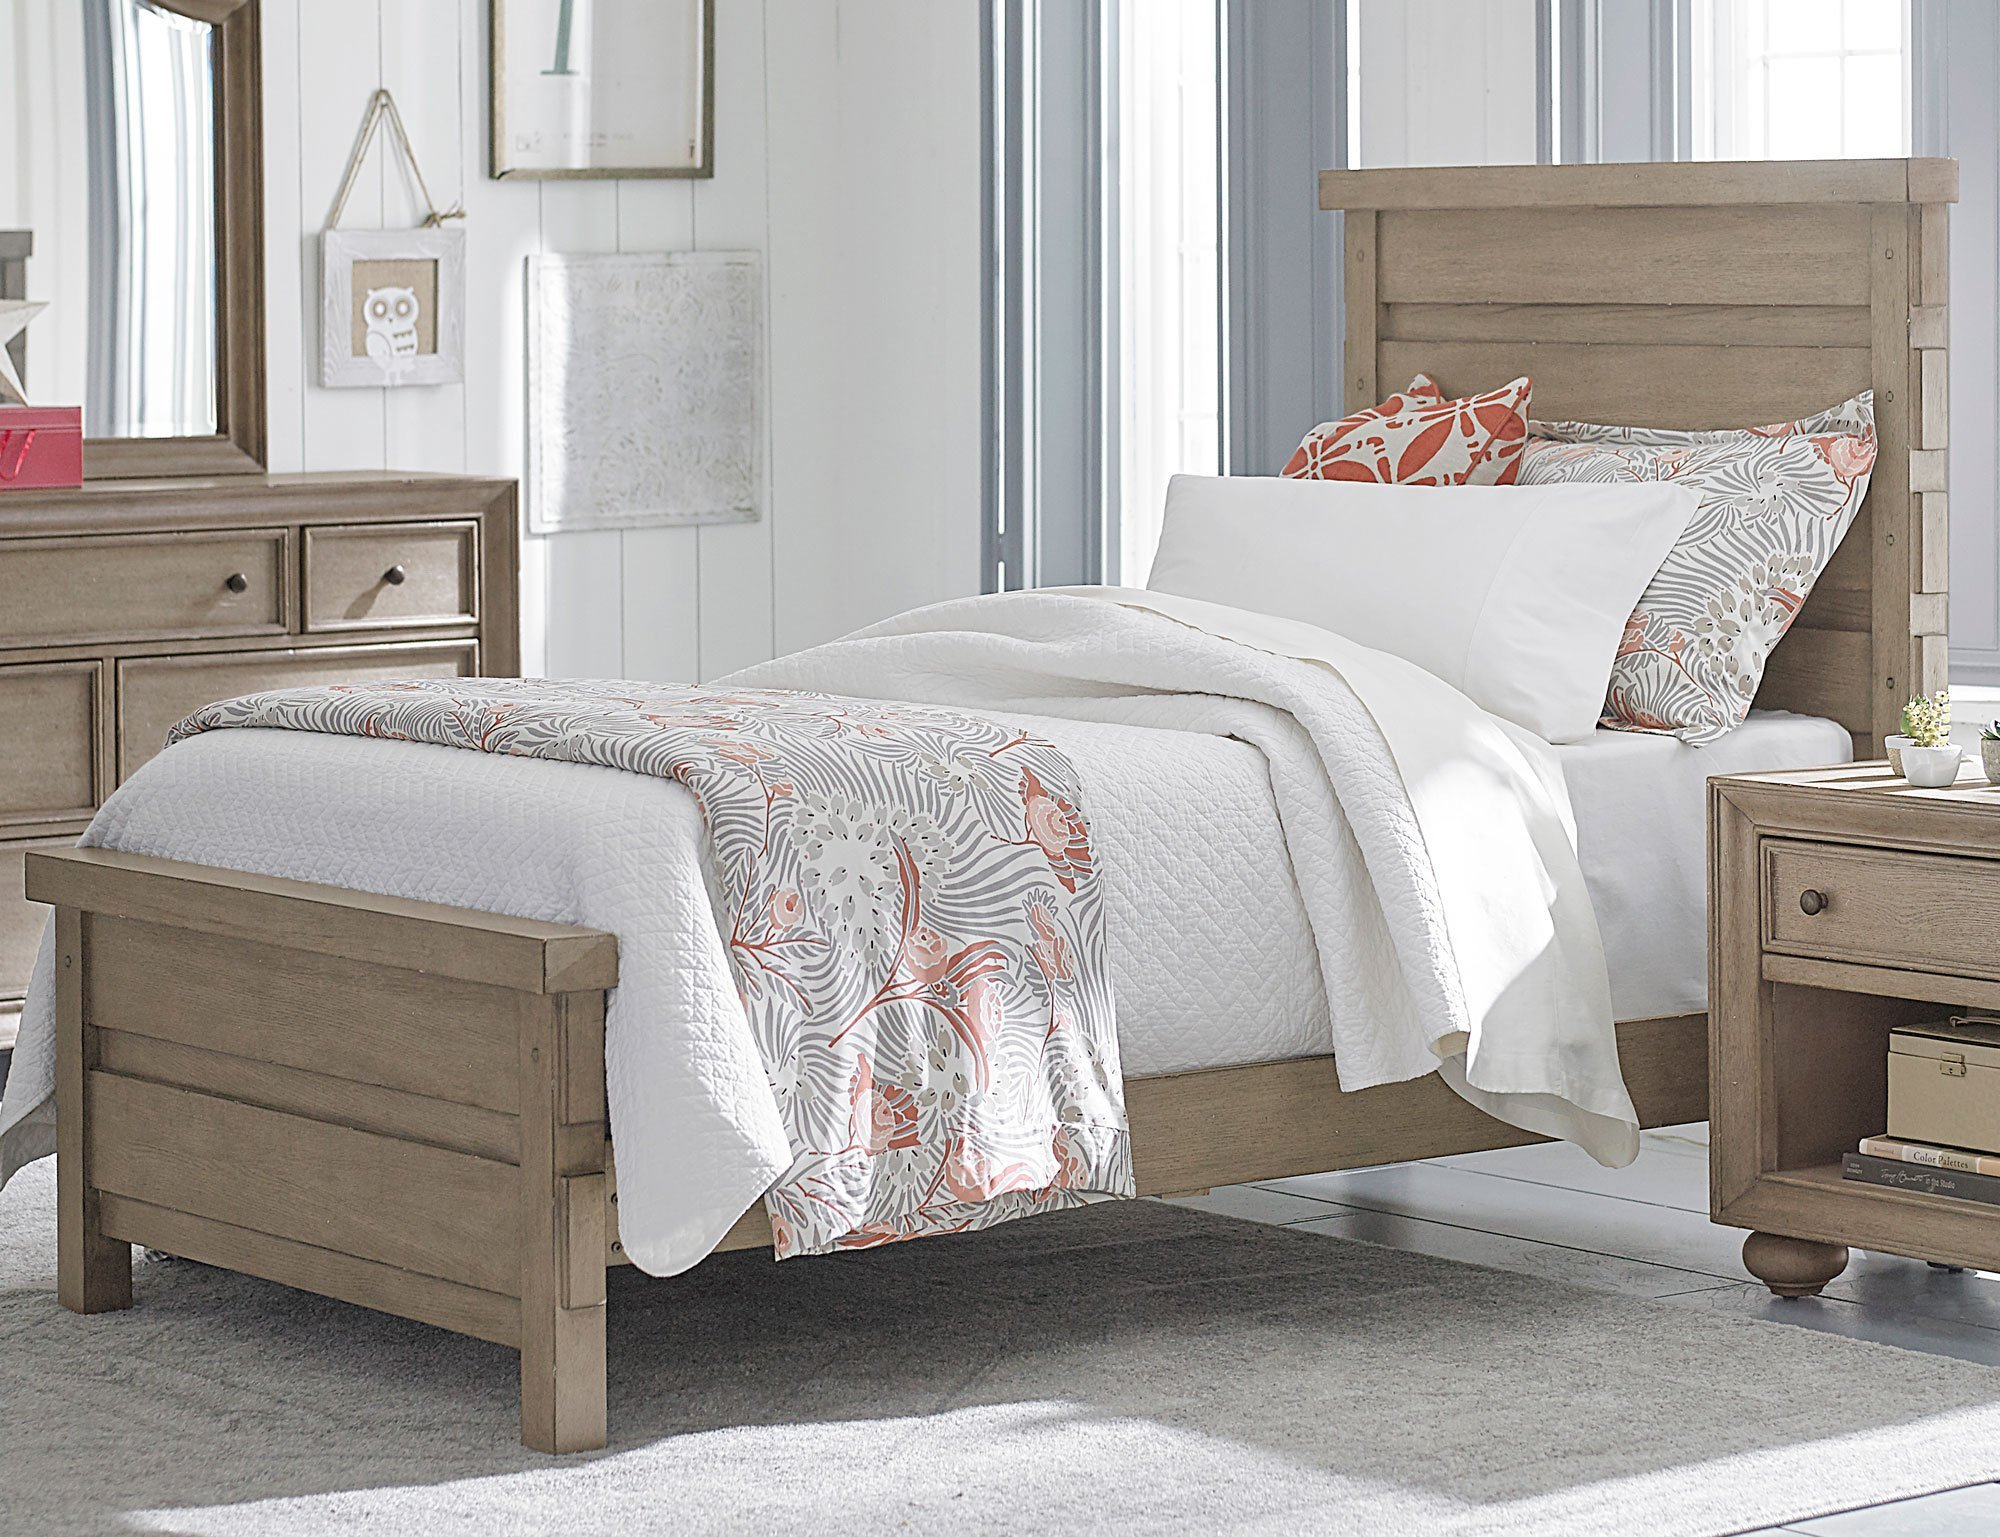 Best Classic Weathered Gray 6 Piece Twin Bedroom Set Heather With Pictures